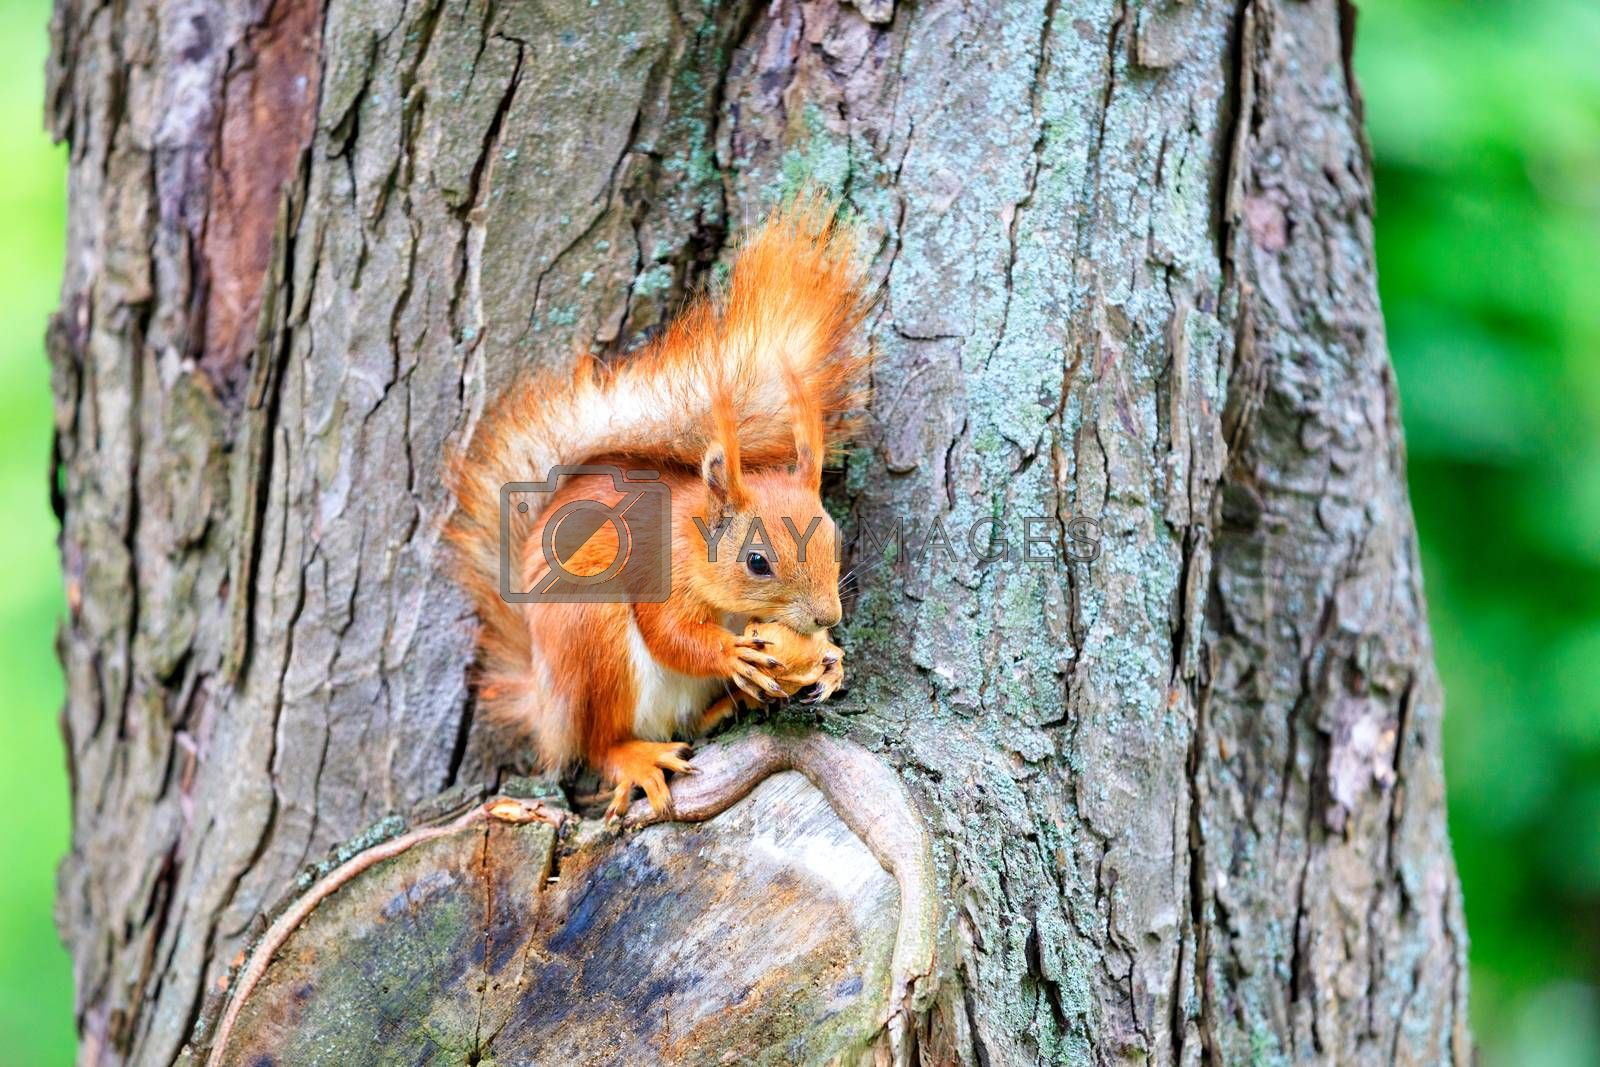 An orange fluffy squirrel sits on a tree in the forest and aggressively nibbles a nut, copy space.